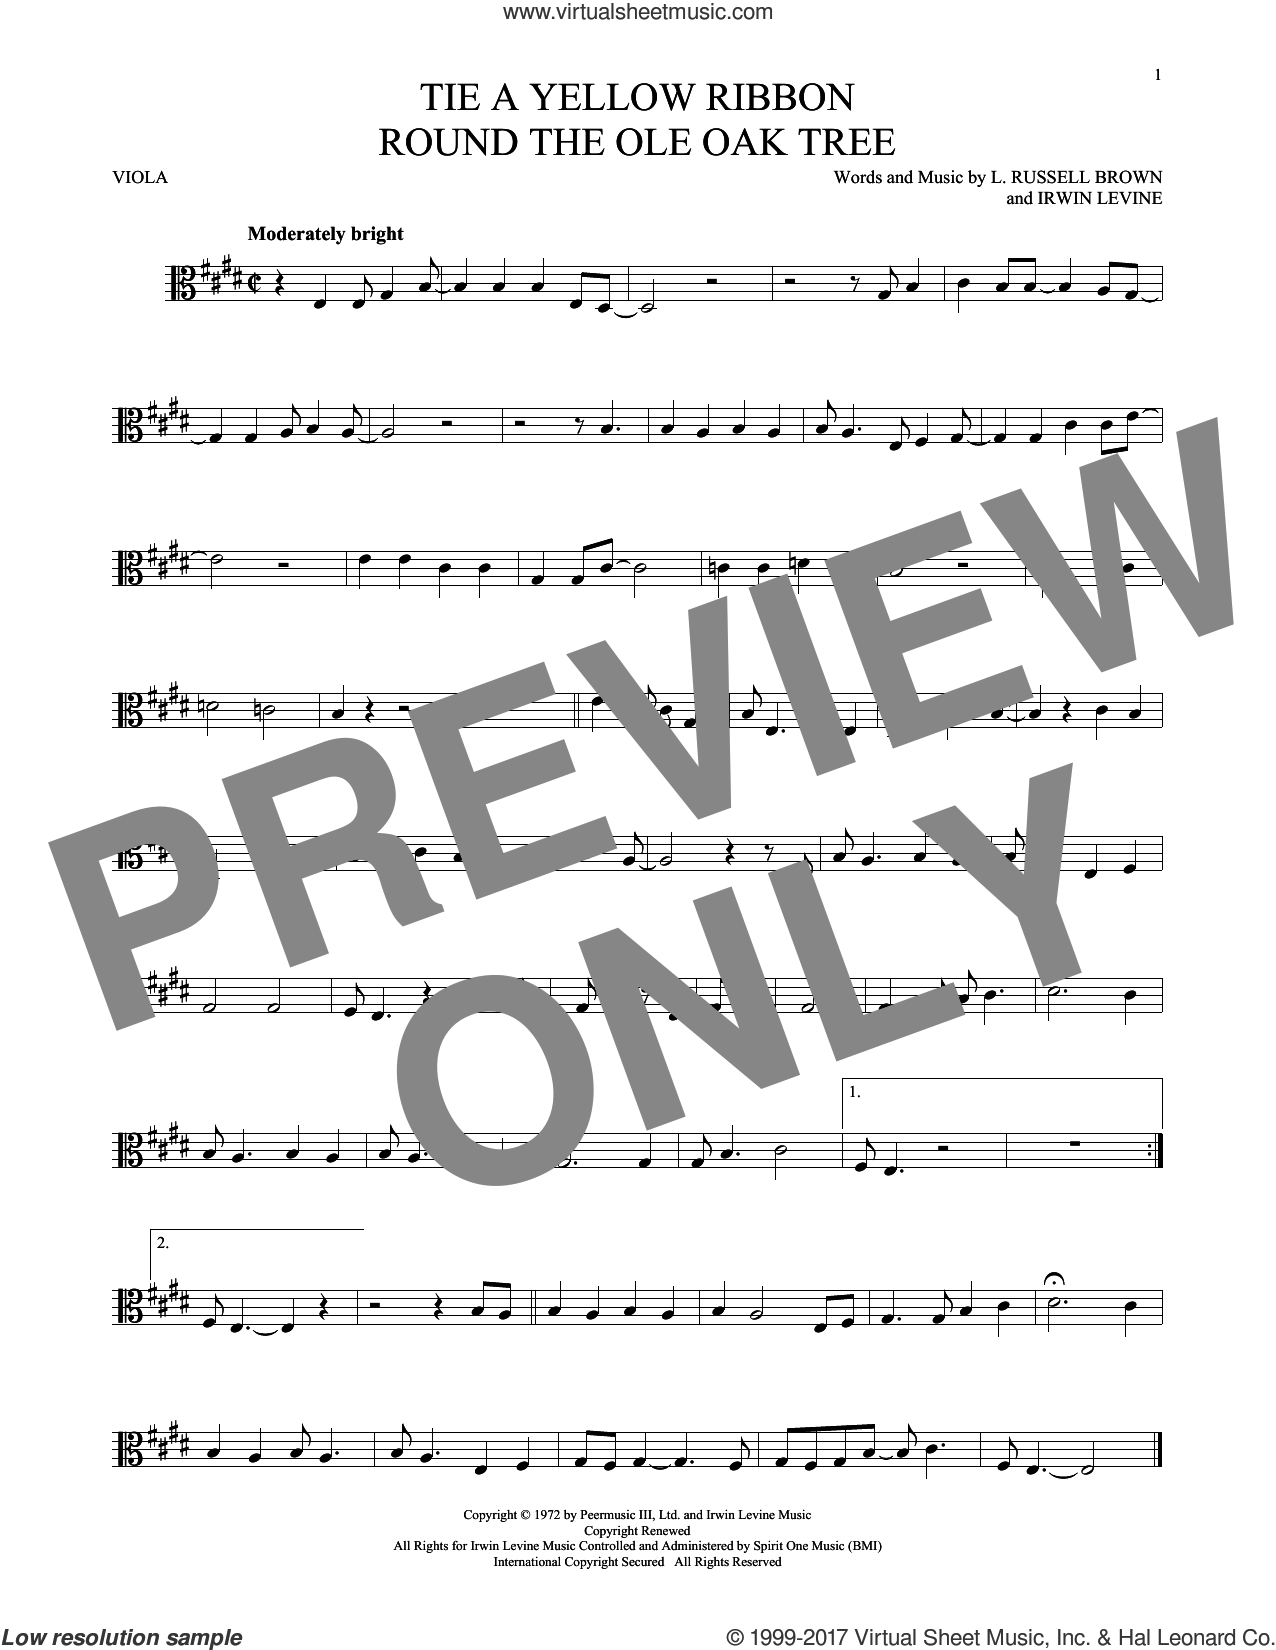 Tie A Yellow Ribbon Round The Ole Oak Tree sheet music for viola solo by Dawn featuring Tony Orlando and Irwin Levine. Score Image Preview.